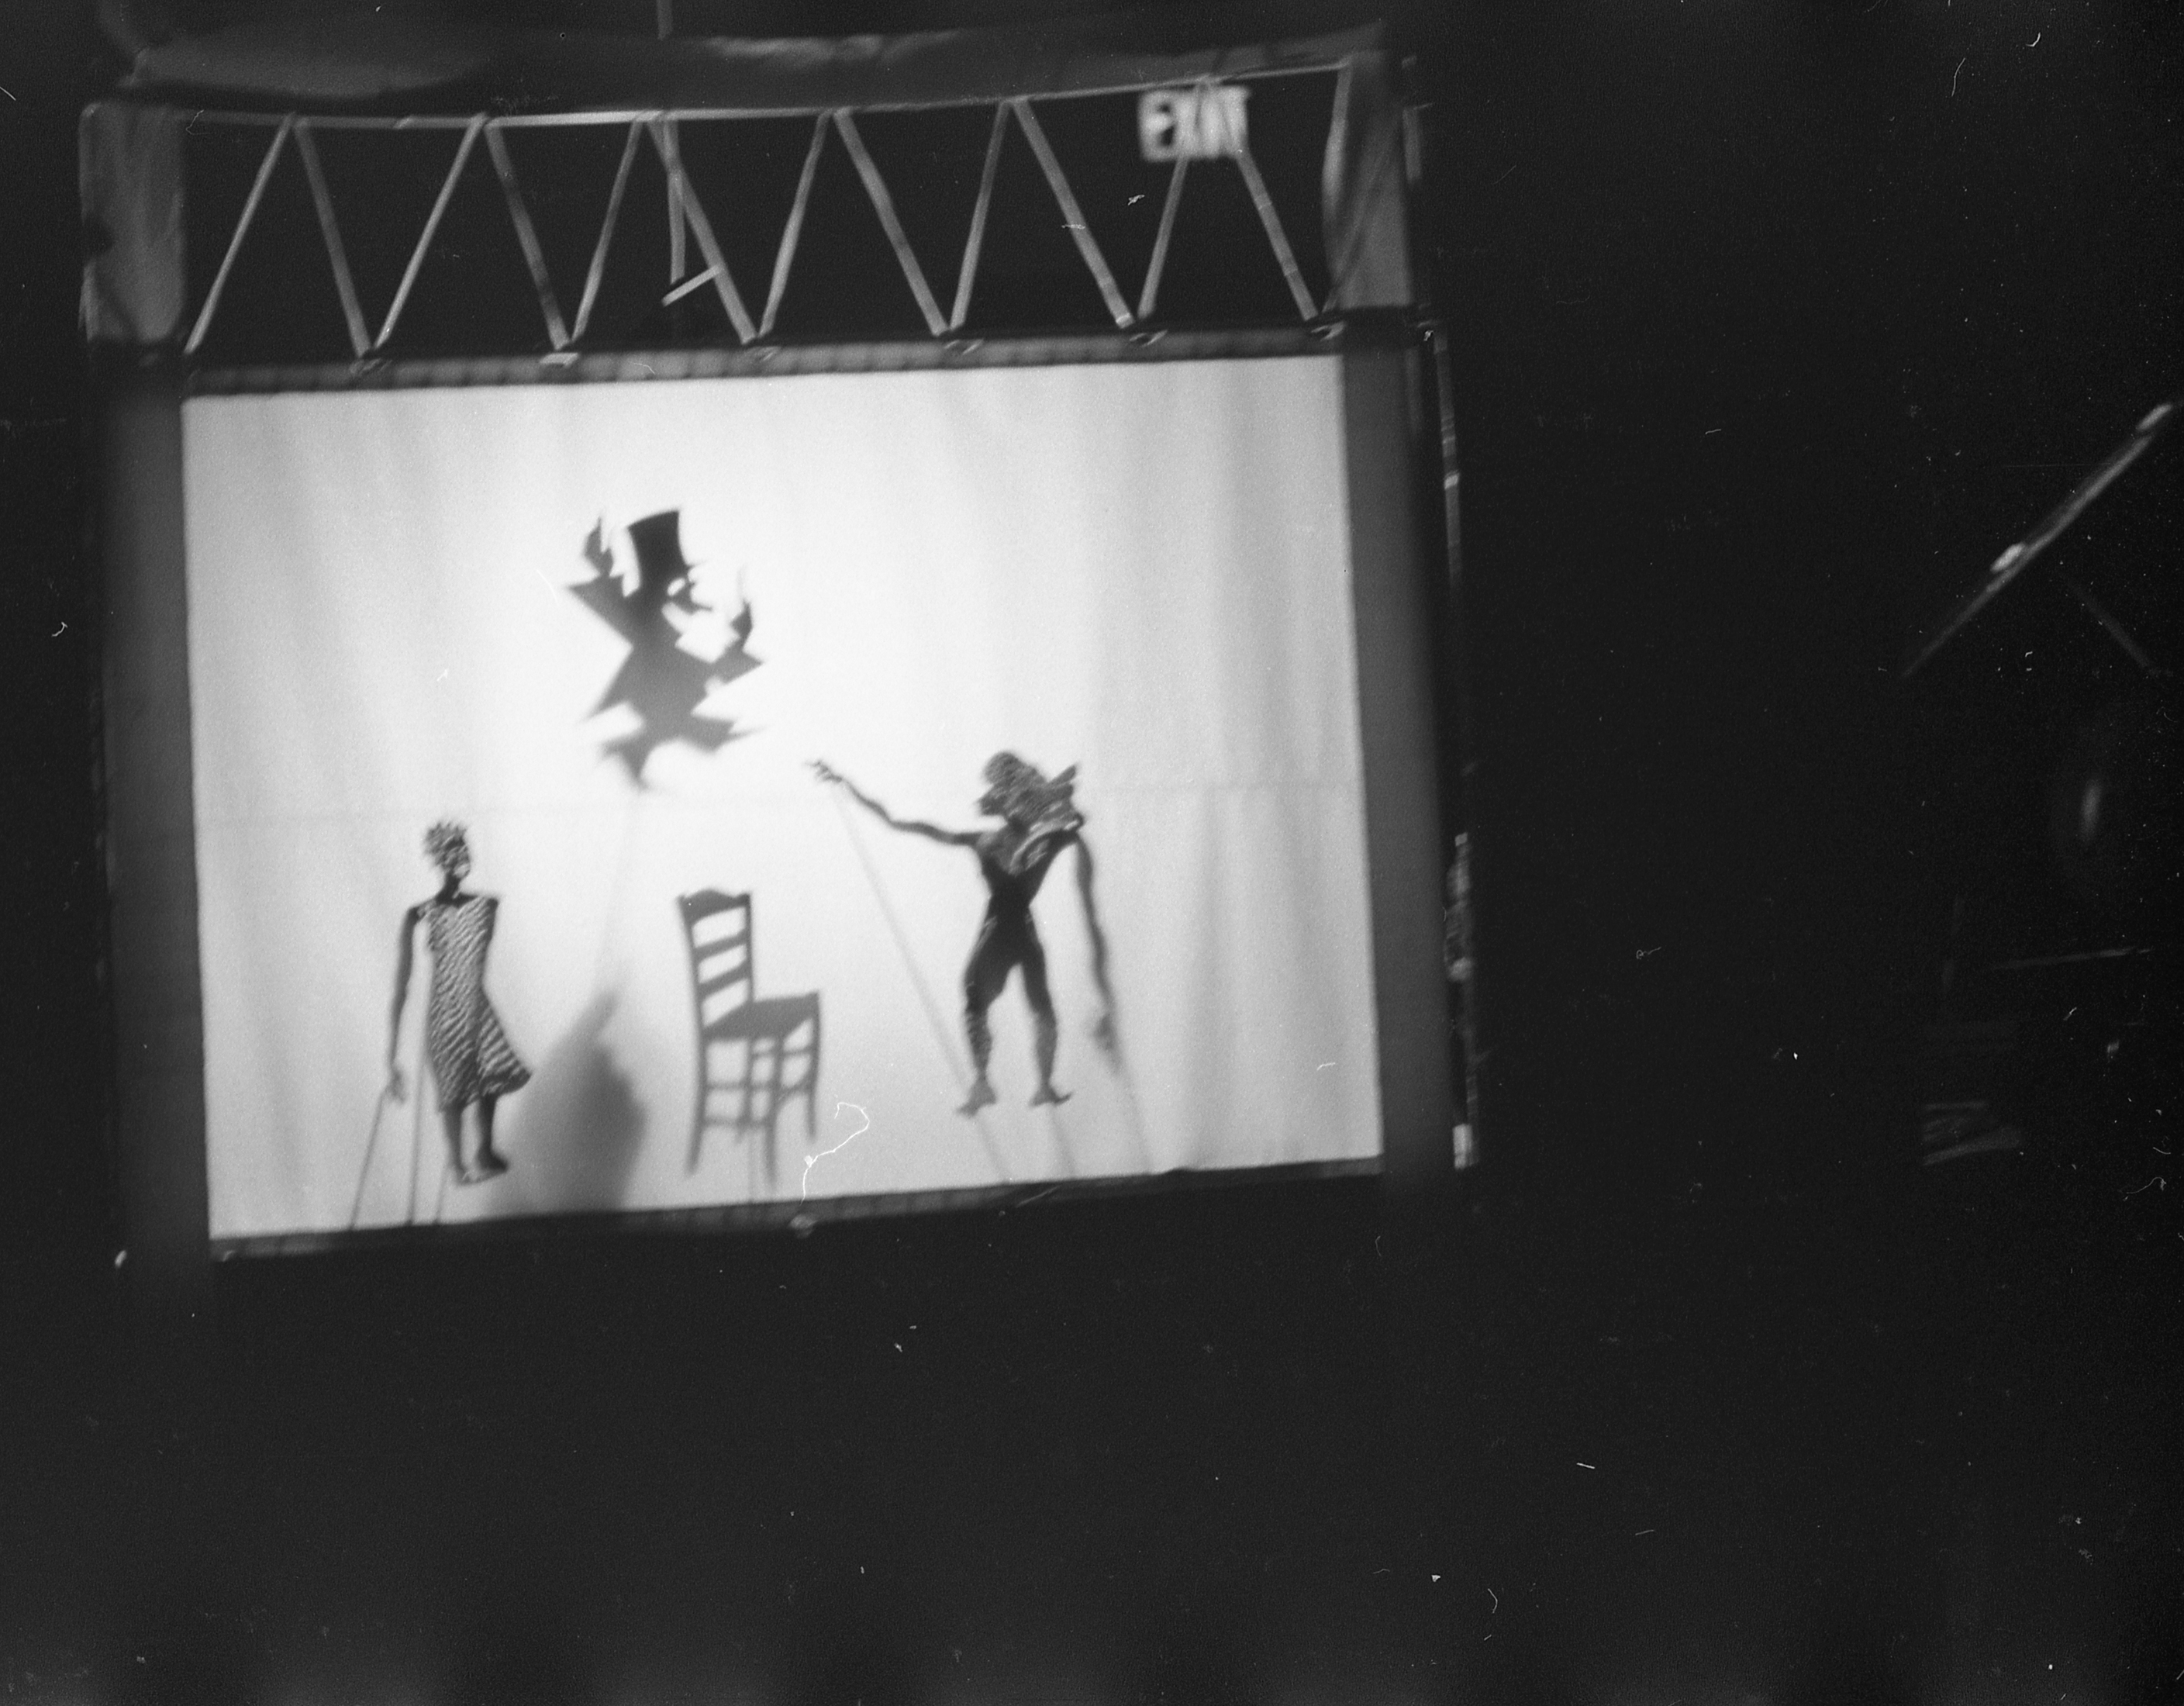 The upper left area of this otherwise dark photograph shows a white screen with the shadows of three stick puppets – one female and two male. They are acting out a scene around a chair.